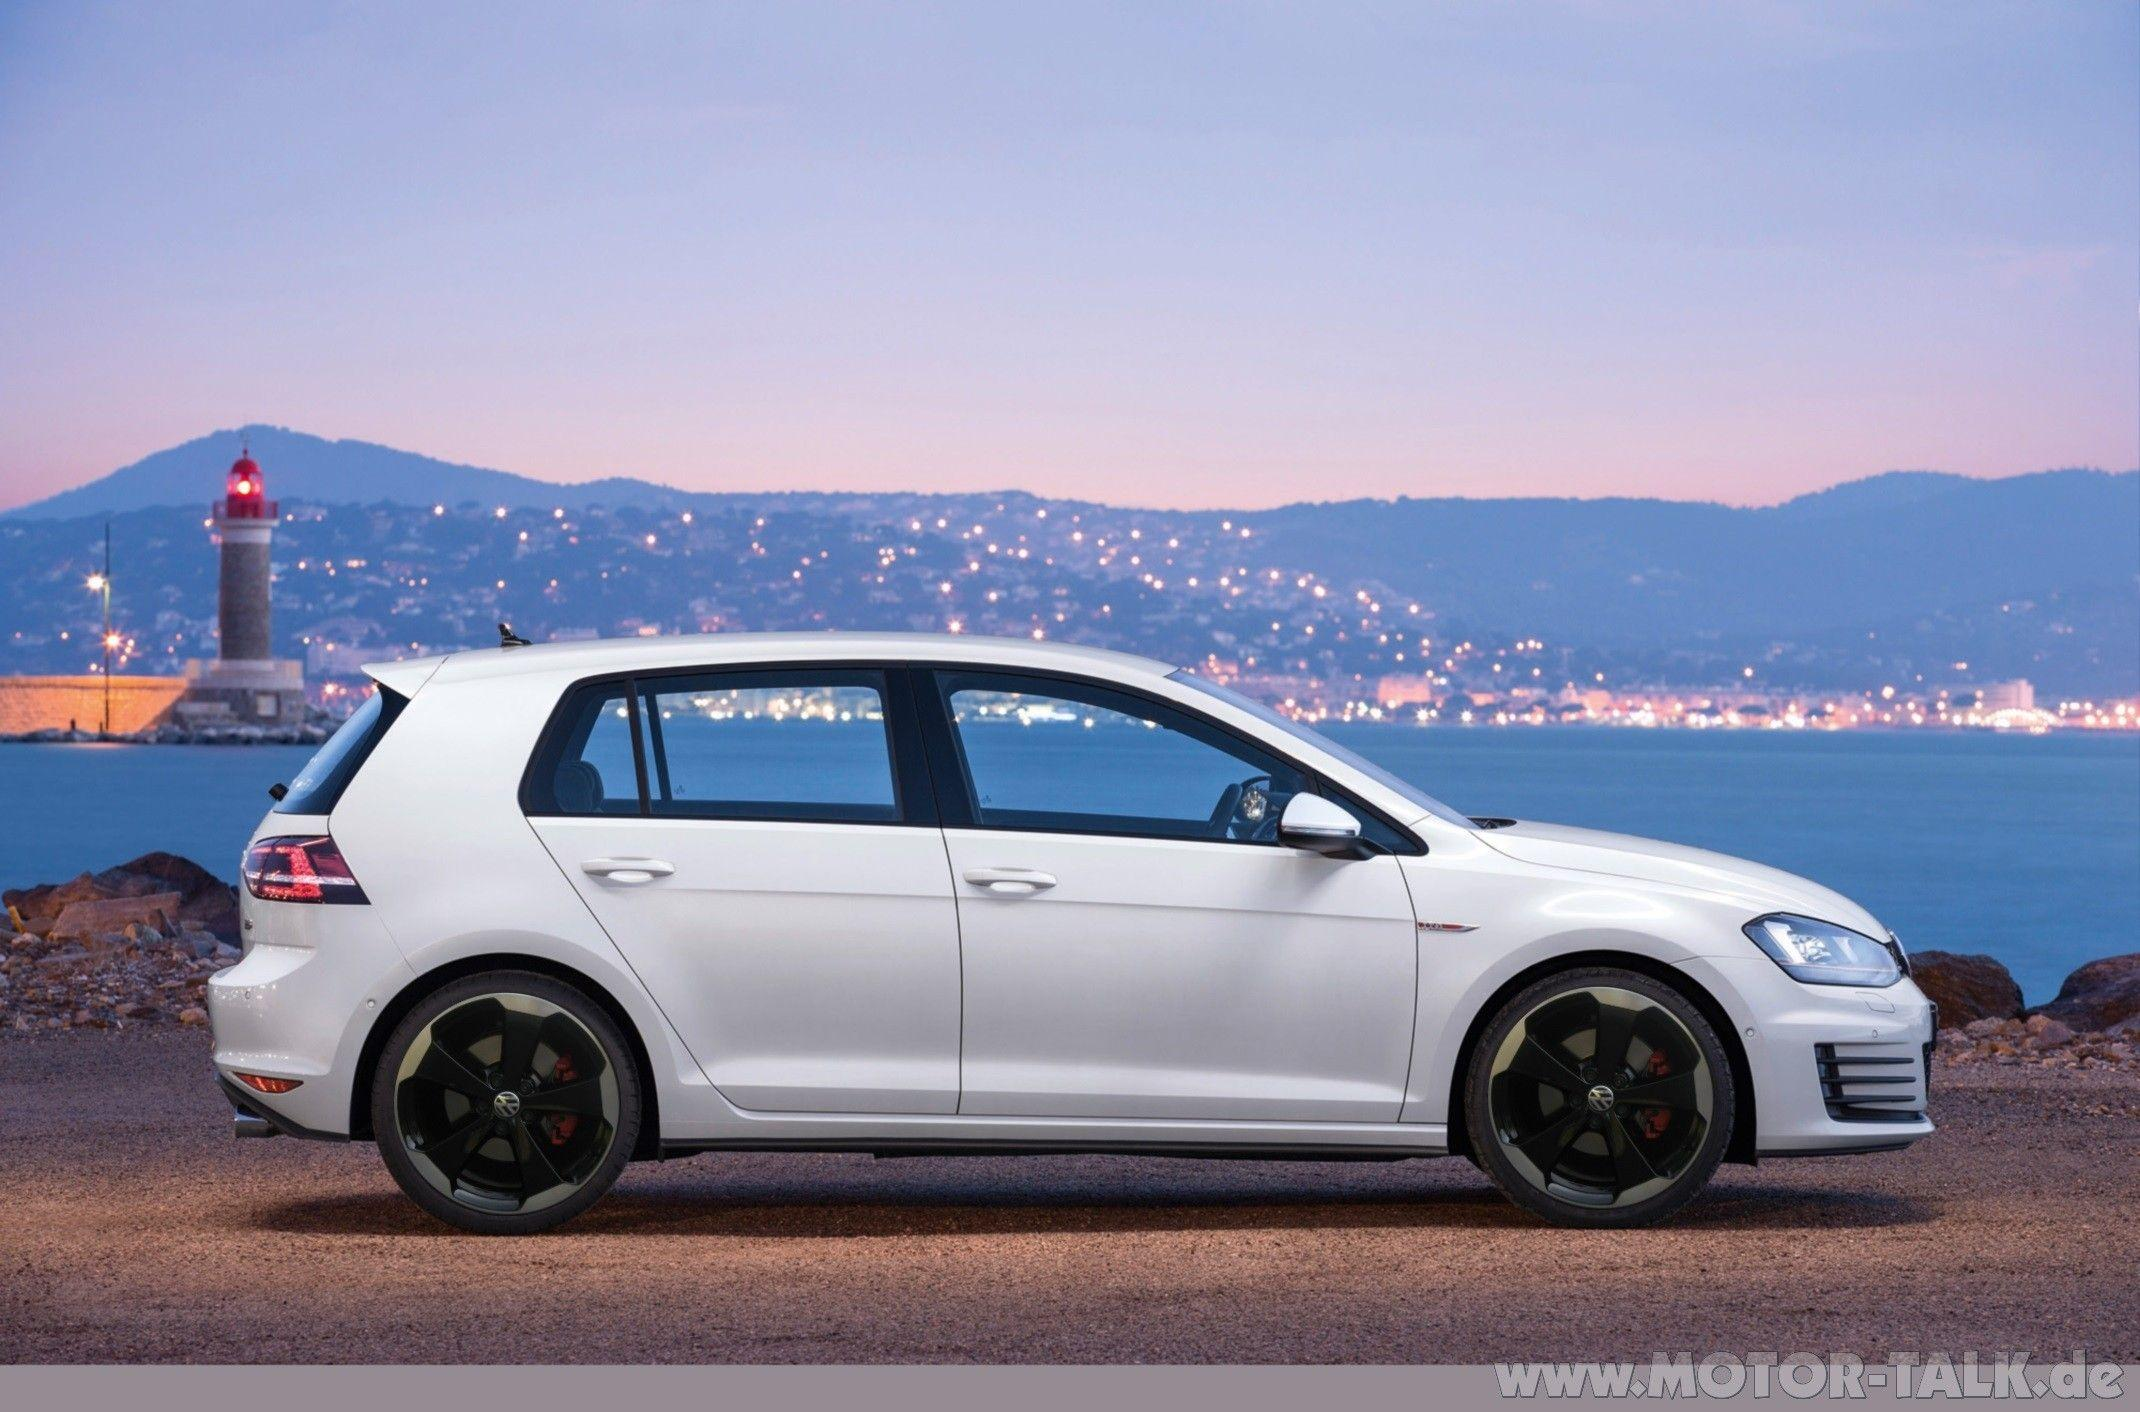 golf, VW Golf 7 GTI, GTI, Side View, Volkswagen Golf Mk7 Wallpapers ...